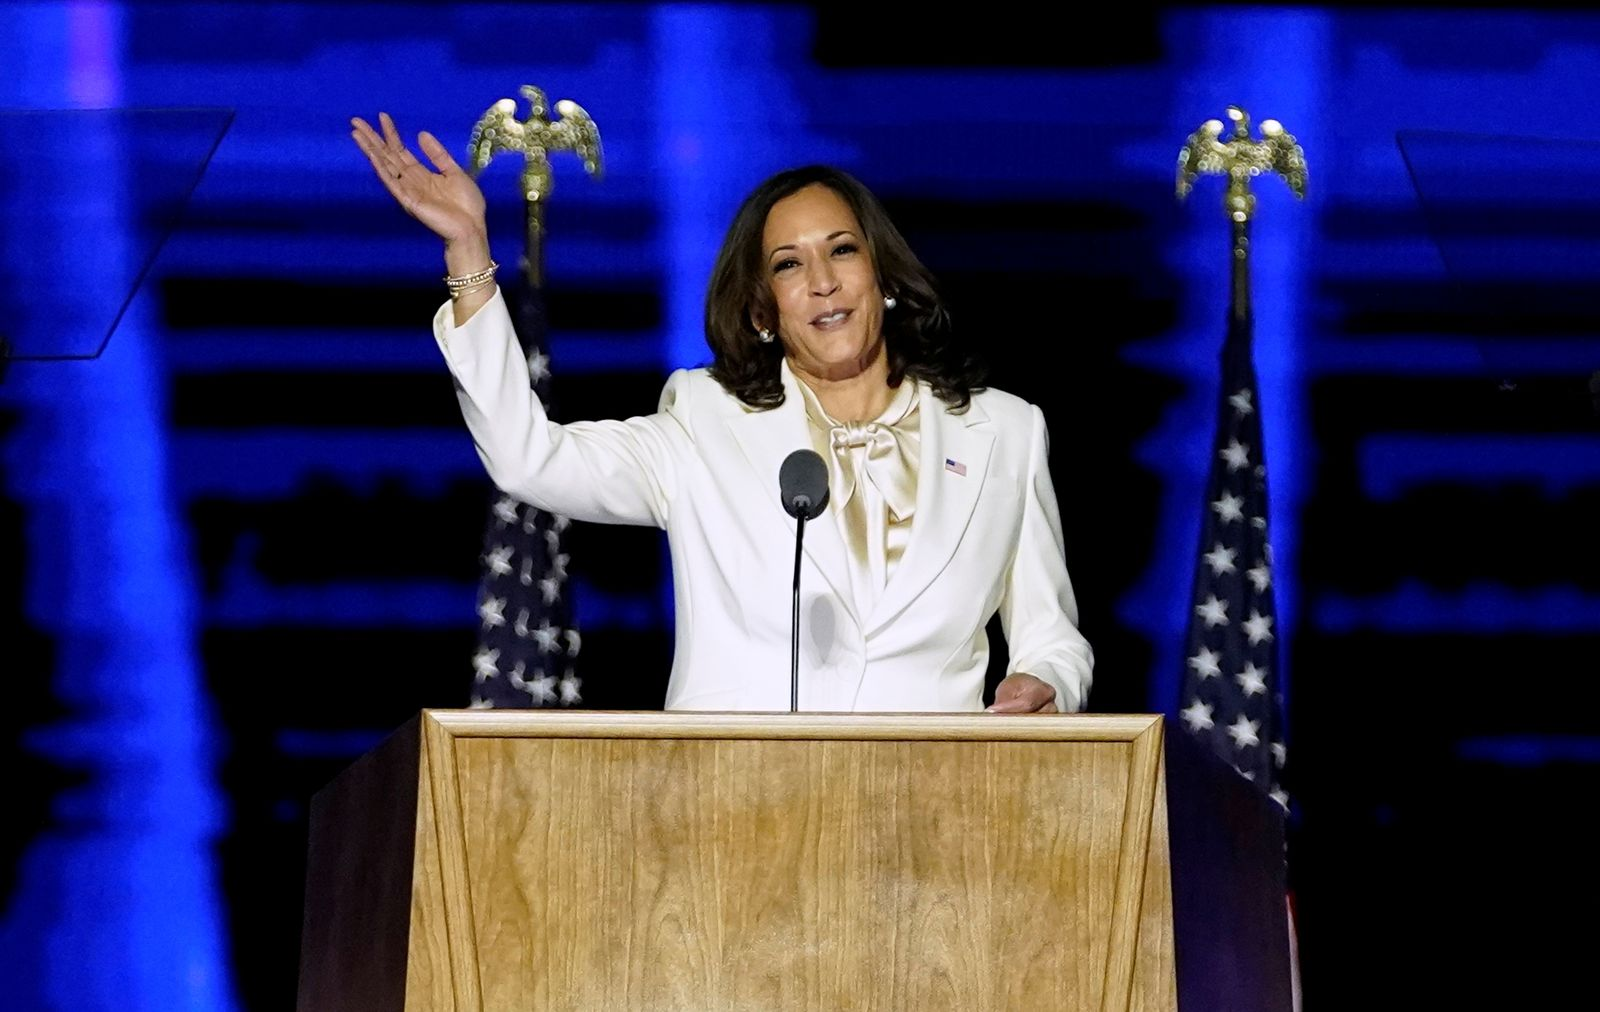 Democratic vice-presidential nominee Kamala Harris speaks to supporters at a election rally, after news media announced that Biden has won the 2020 U.S. presidential election, in Wilmington